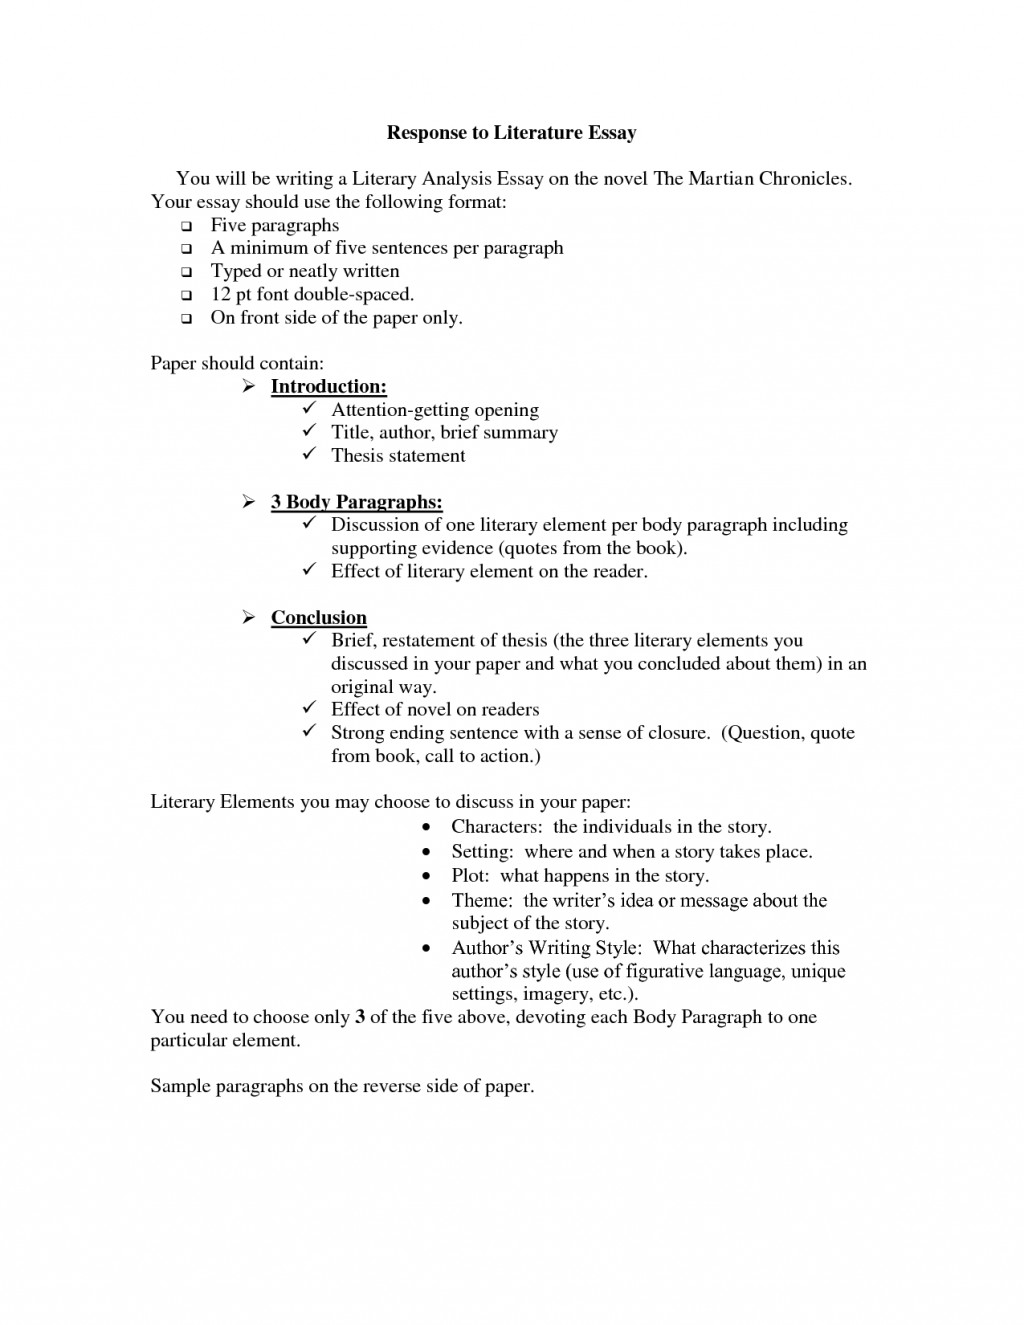 021 Essay Example How To Write Response Critical Analysis Literature Character Sketch Macbeth Introduction College Poetry Rhetorical Process Examples Analytical Singular A An Article Poem Outline Large